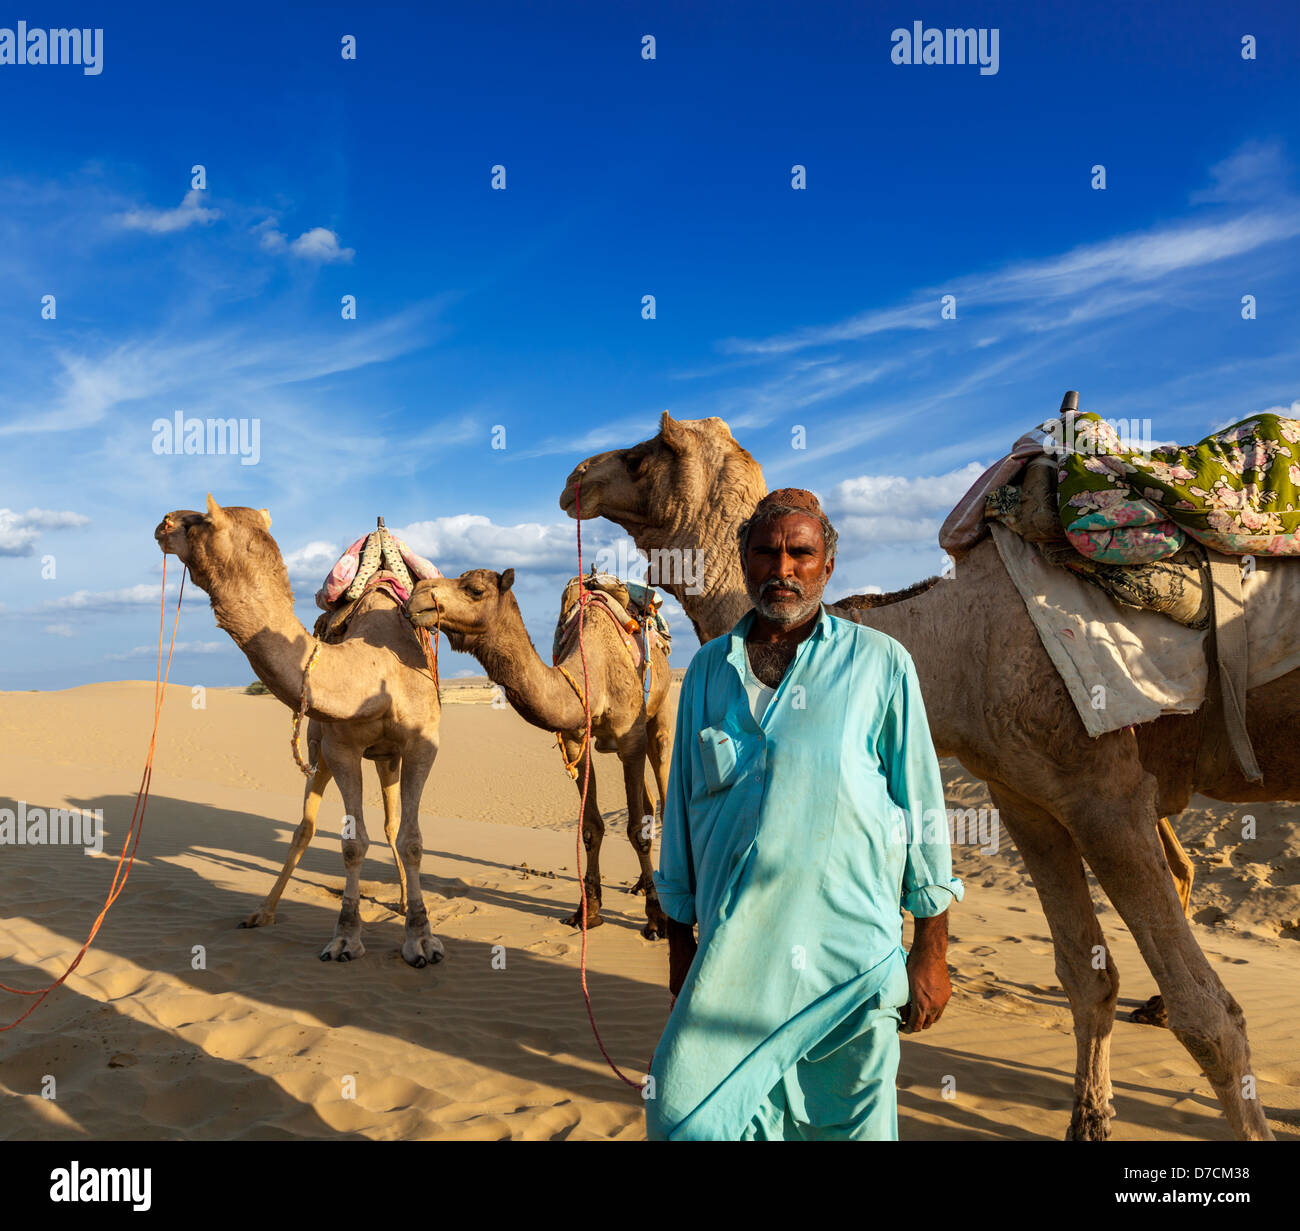 Rajasthan travel background - uomo indiano cameleer (camel driver) ritratto con i cammelli in dune del deserto di Immagini Stock